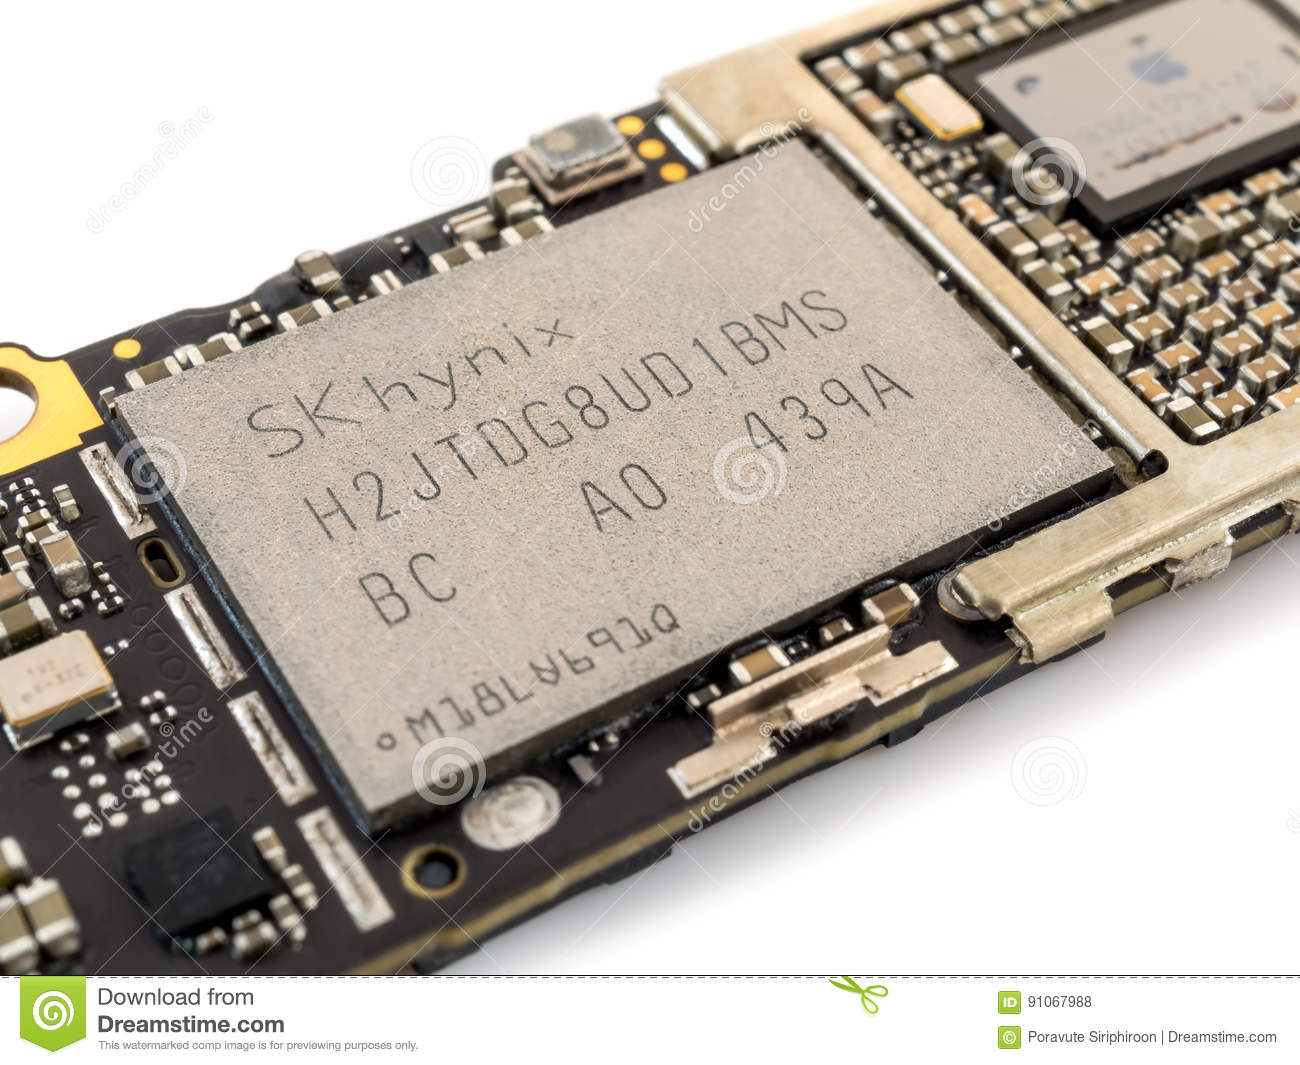 Apple IPhone 6 NAND Flash IC Chip Editorial Stock Photo - Image of